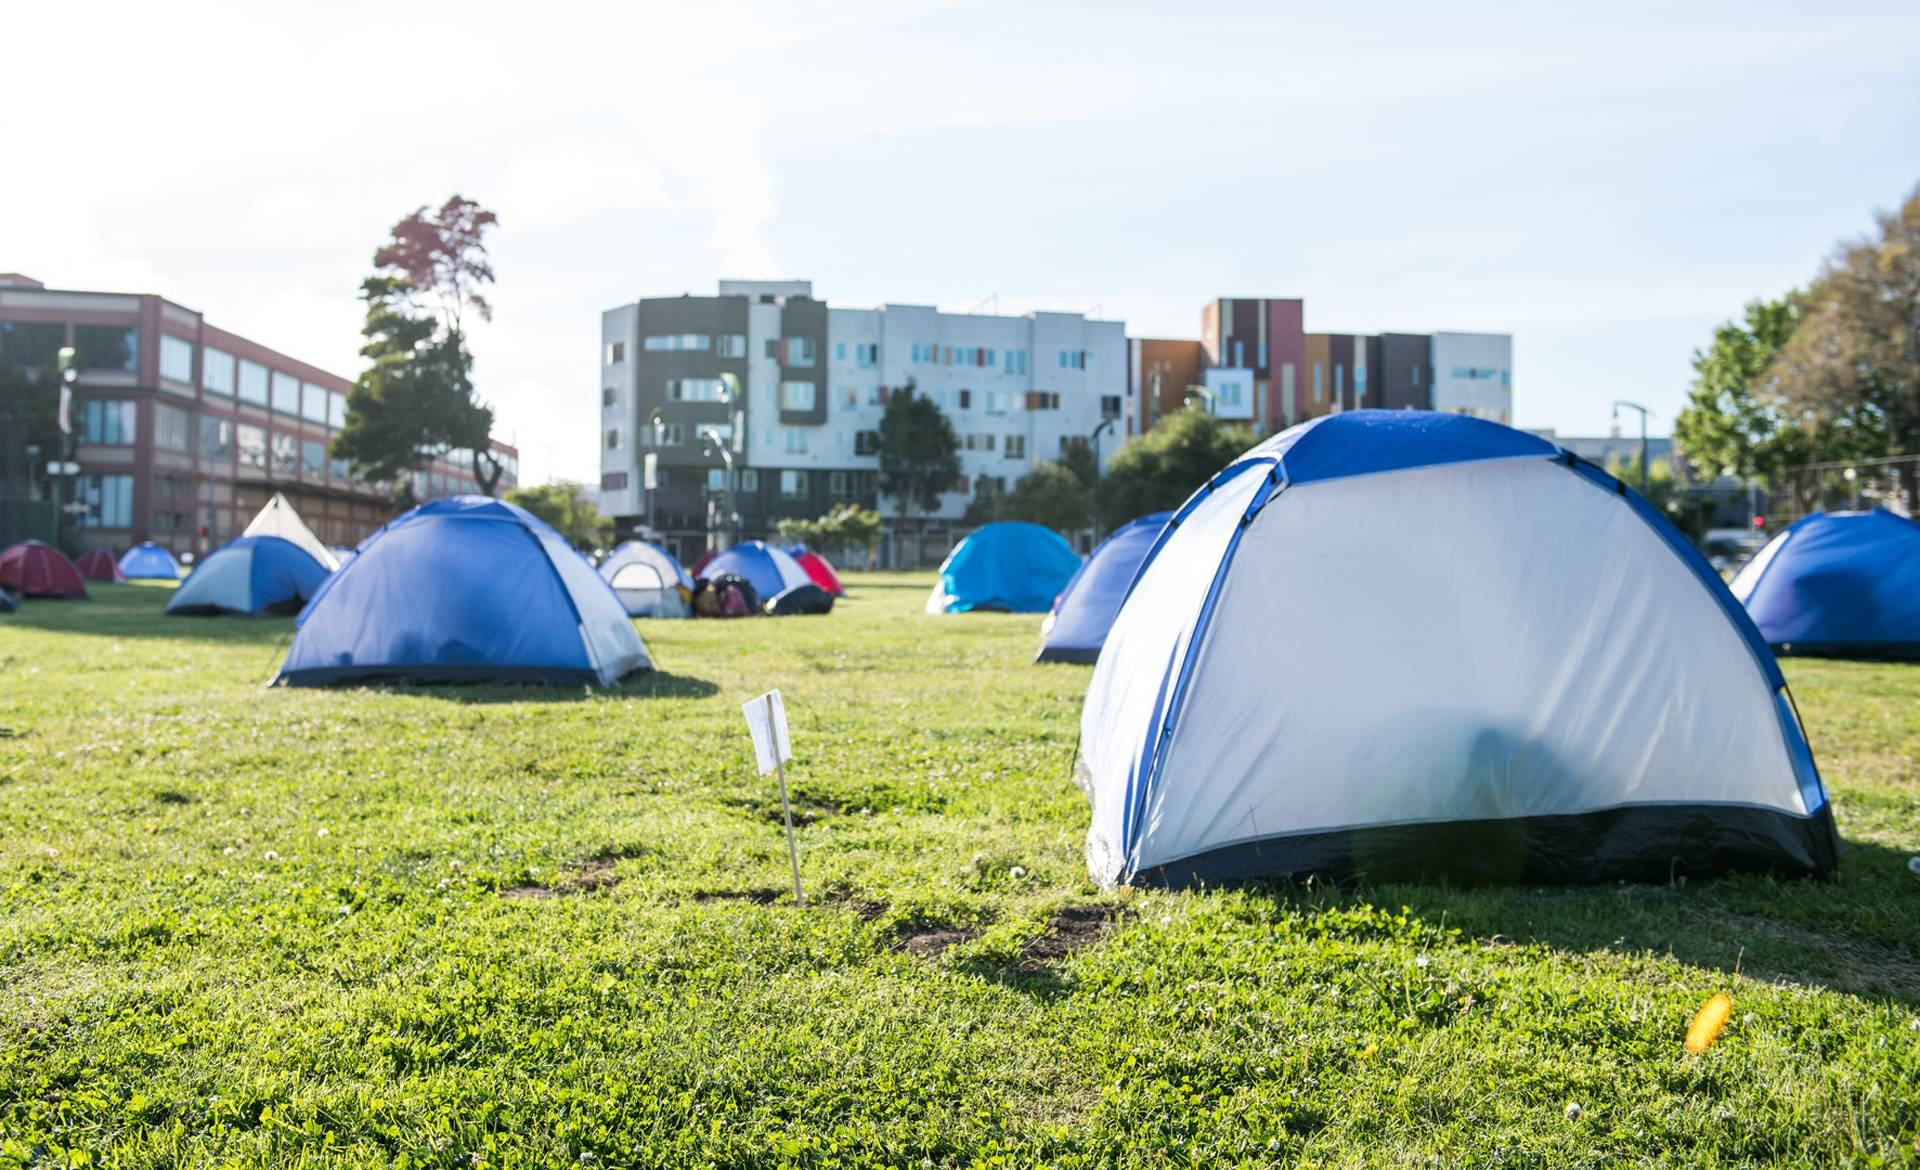 Tents are spaced for social distancing at Bay View Park K.C. Jones Playground on May 5, 2020. Beth LaBerge/KQED